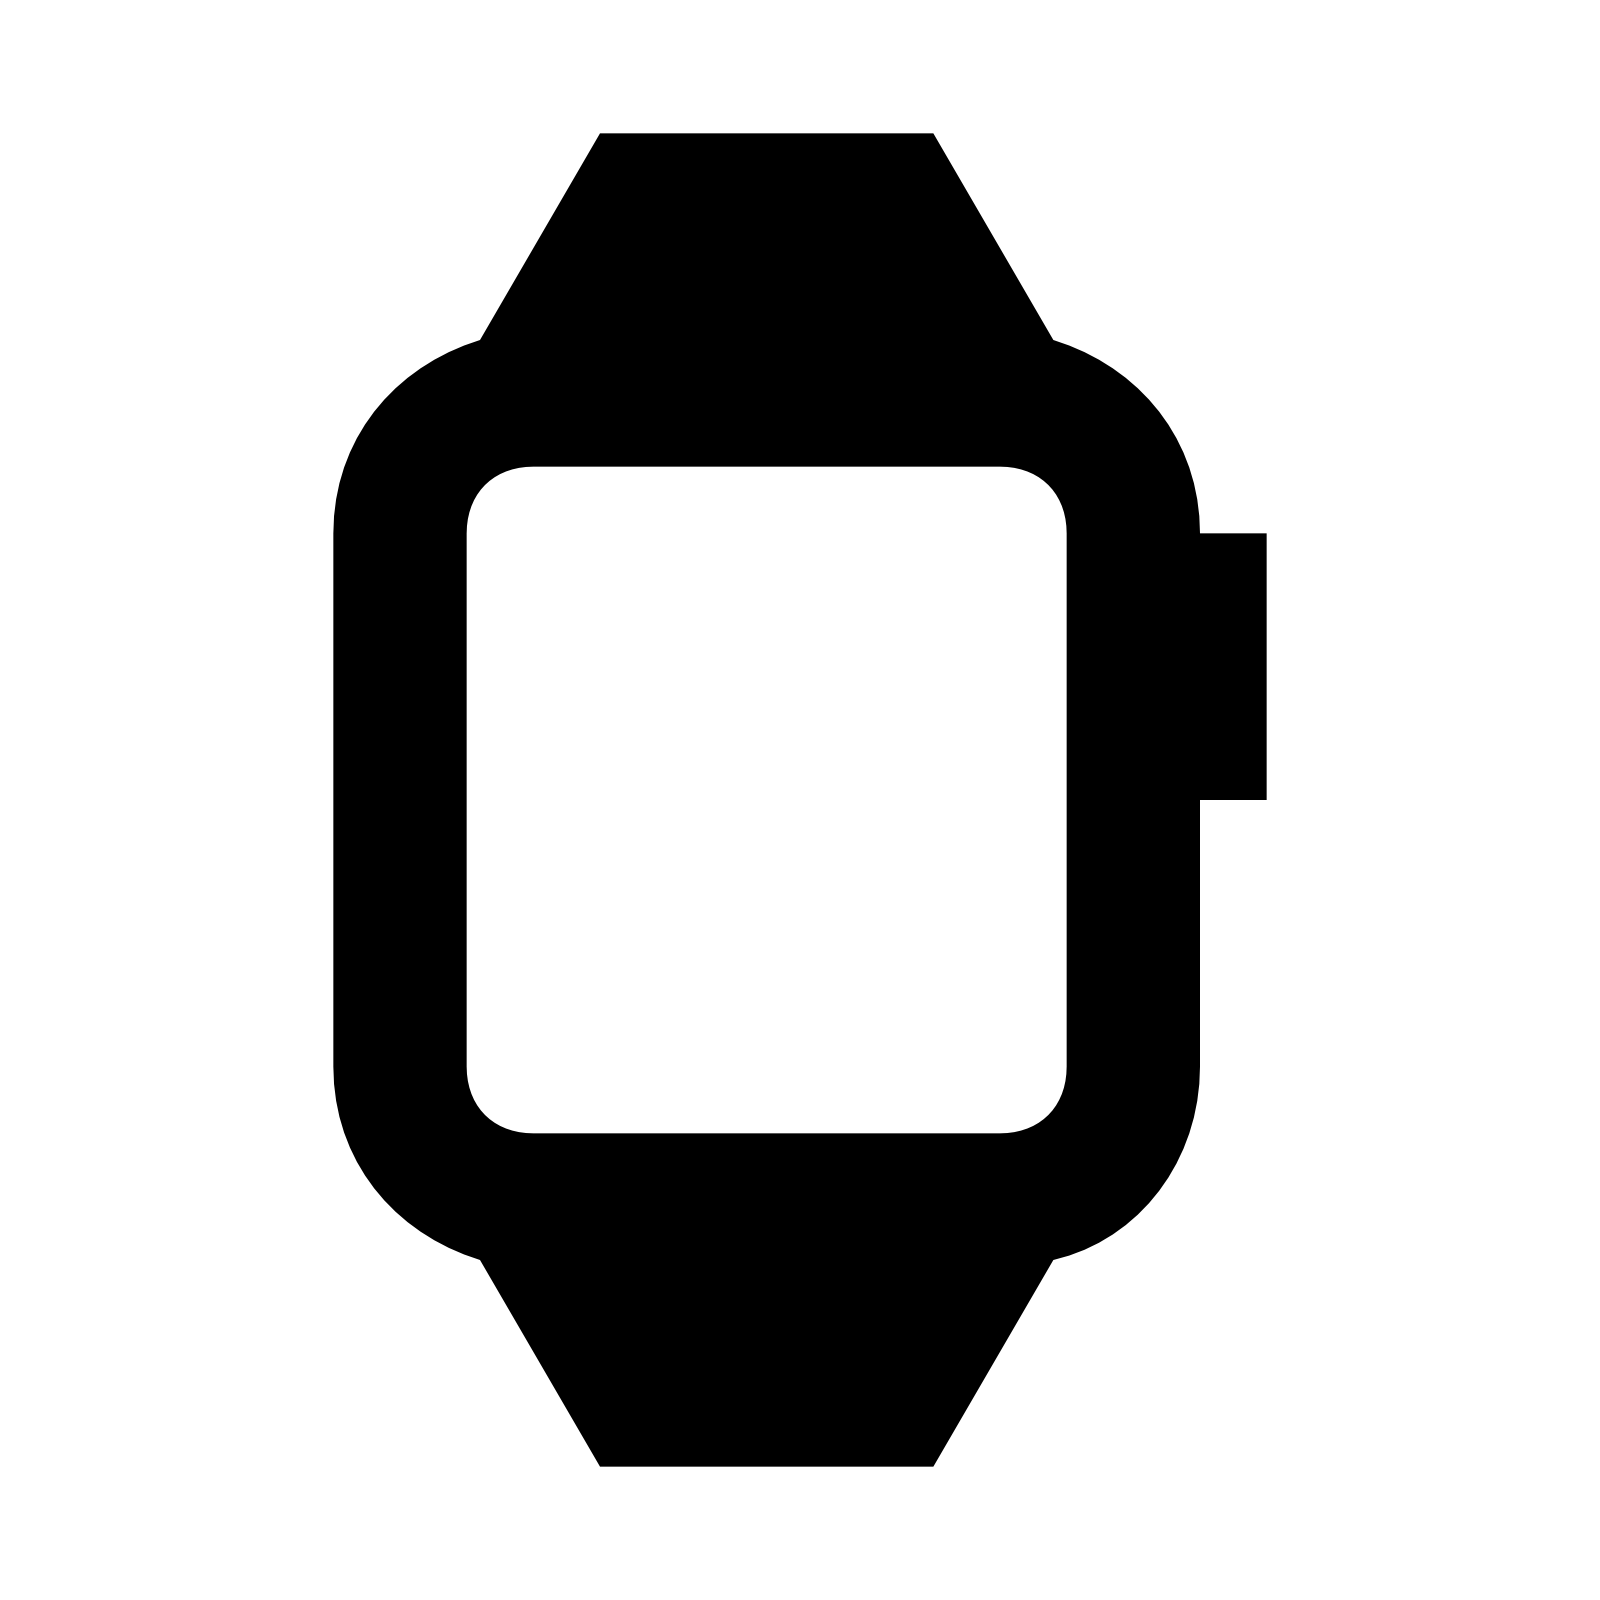 Apple watch clipart picture transparent download Apple Watch Clipart | Free download best Apple Watch Clipart on ... picture transparent download